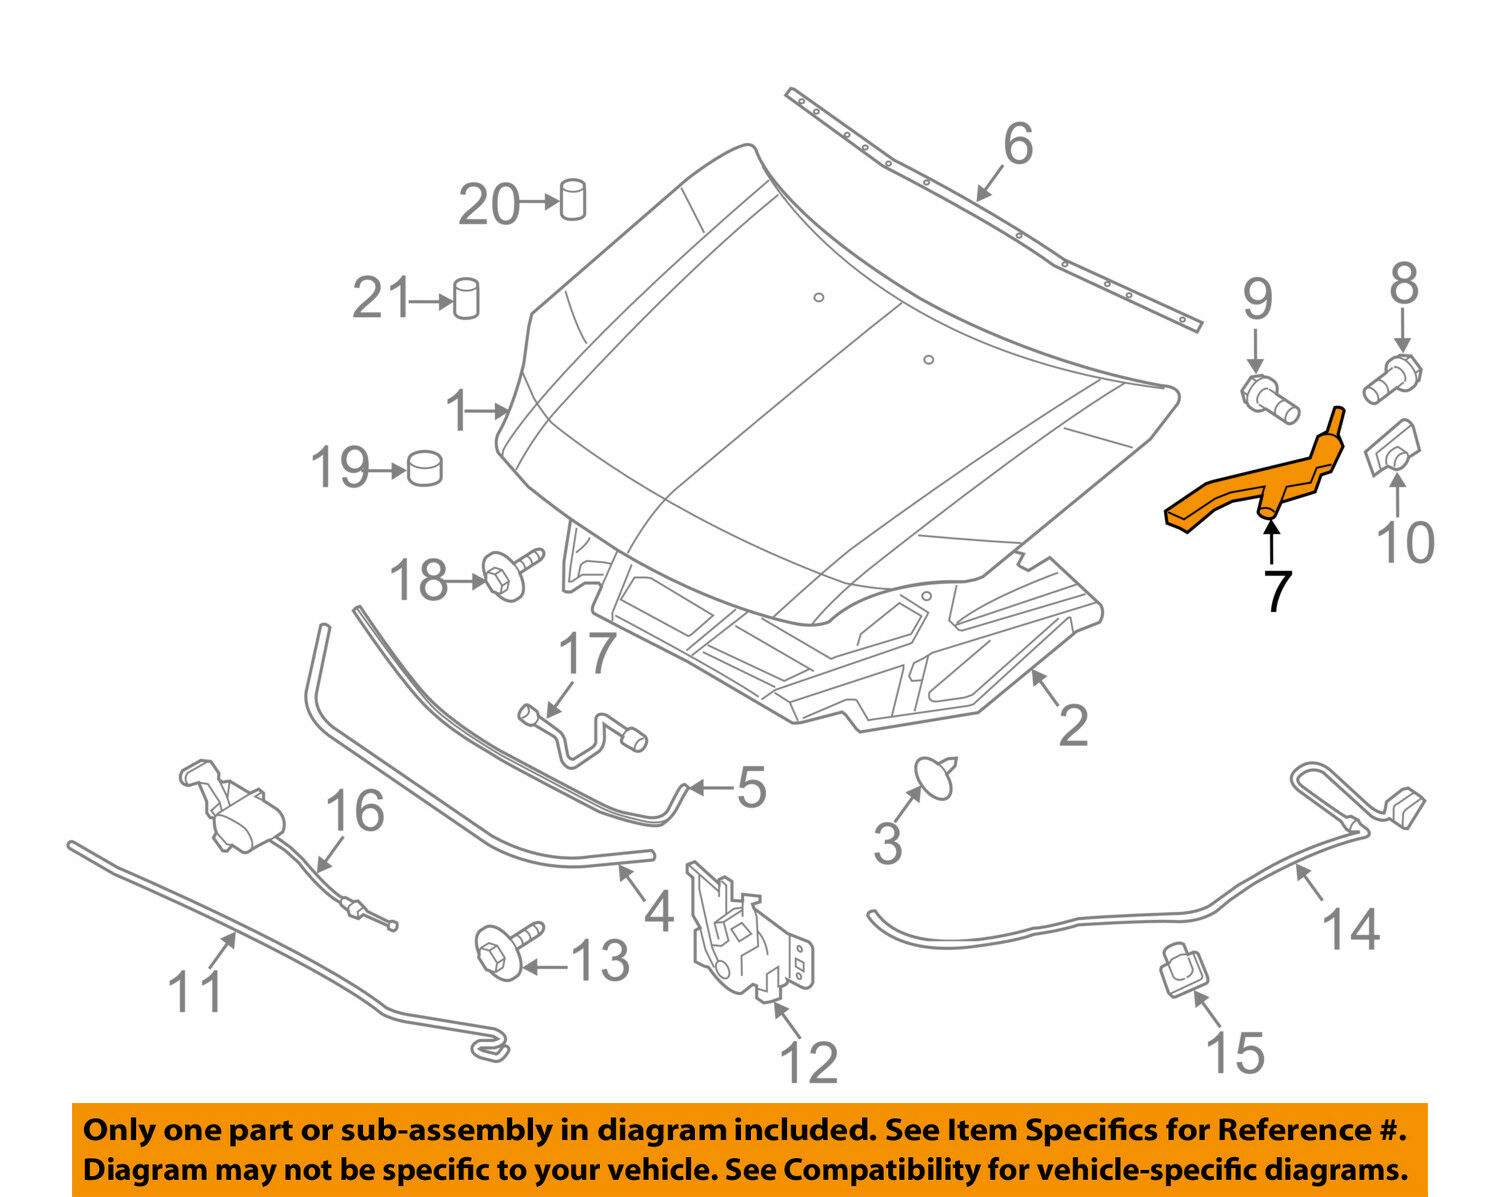 Lincoln Ford Oem 07 12 Mkz Hood Hinge Left 6h6z16797a 2988 2009 Mks Engine Diagram 1 Of 2only Available